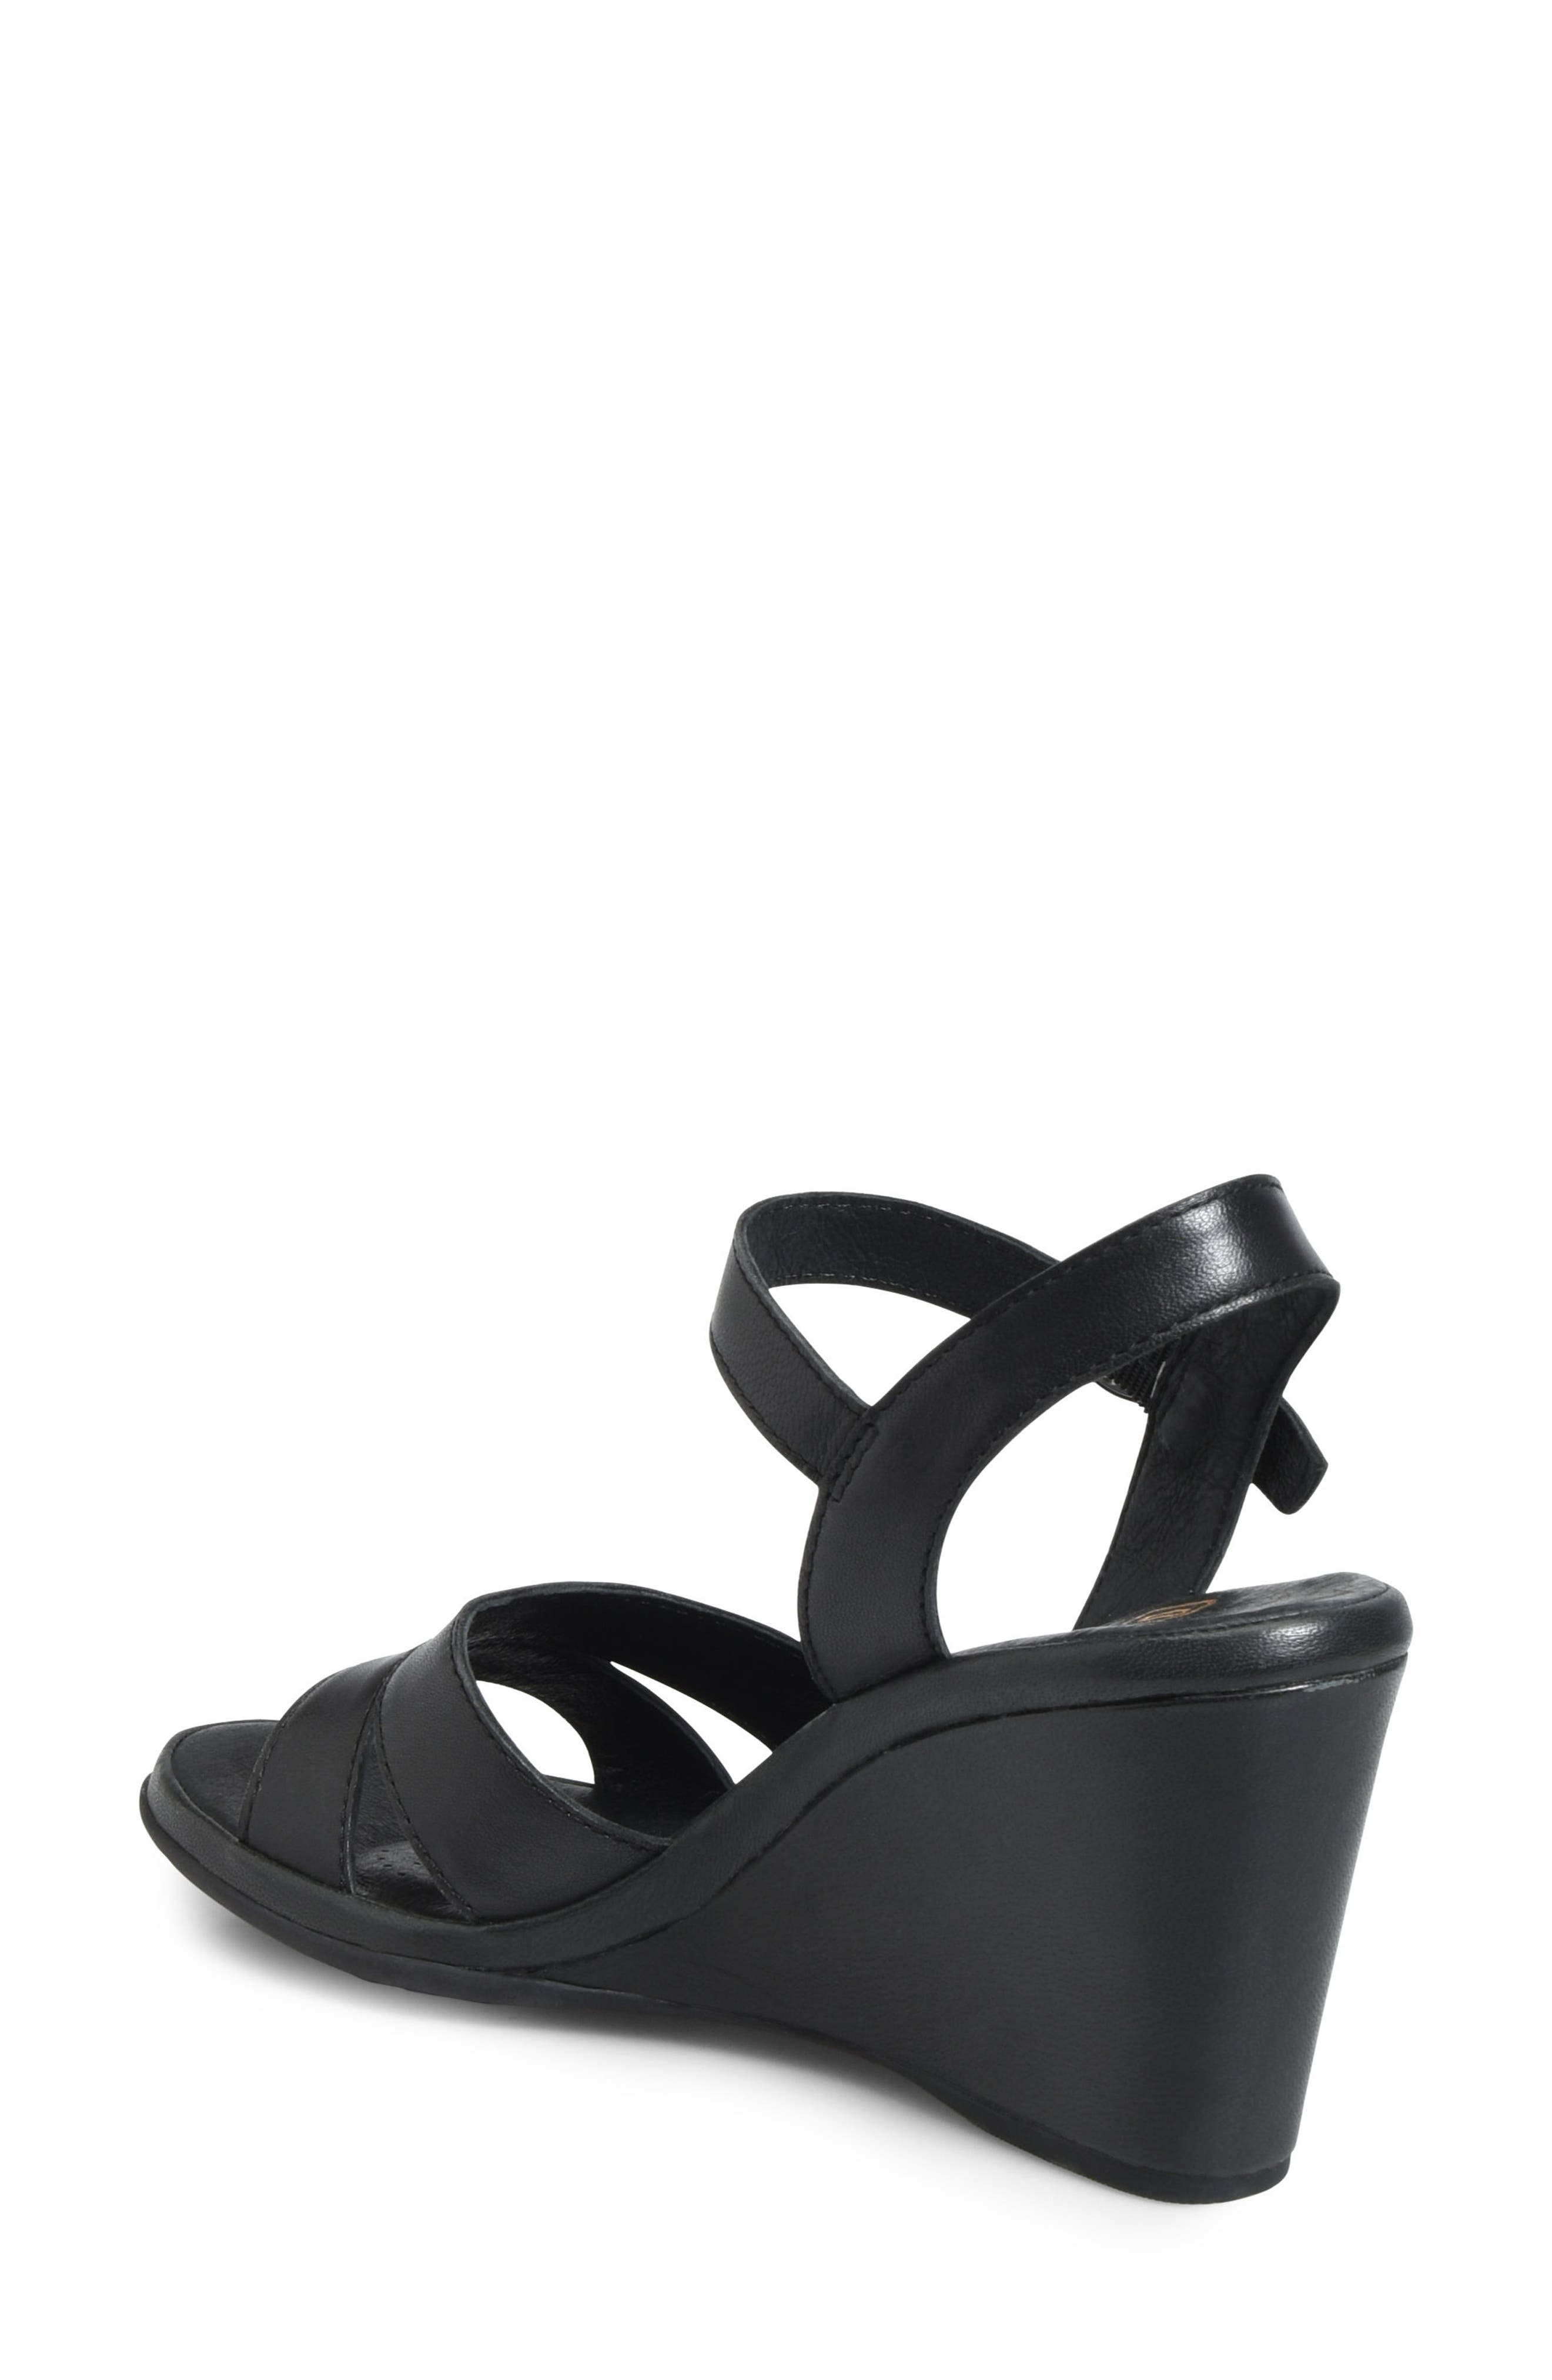 Hydro Wedge Sandal,                             Alternate thumbnail 2, color,                             BLACK LEATHER